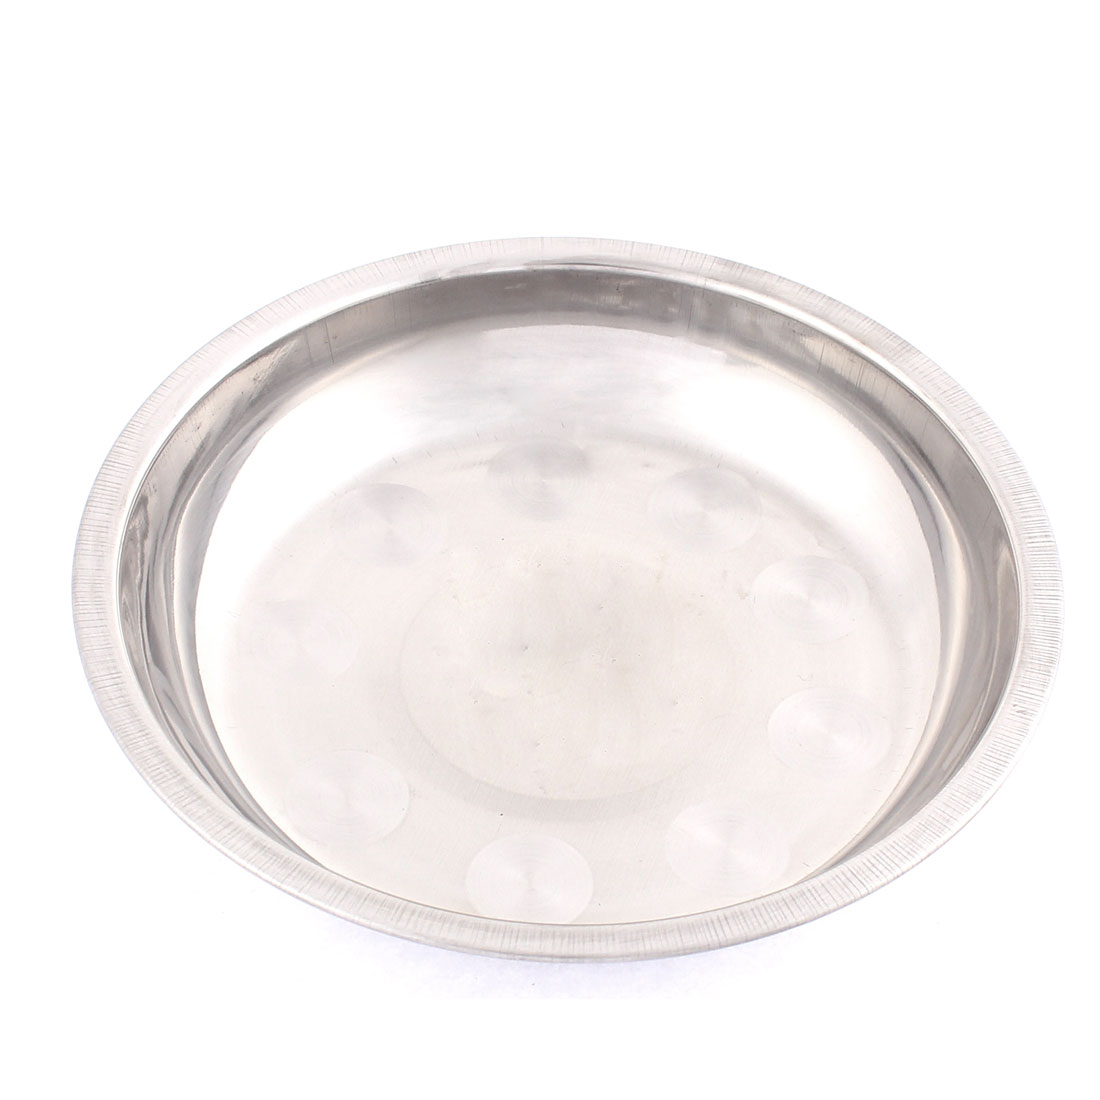 Kitchen Restaurant Round Shaped Dish Plate Container 14cm Dia